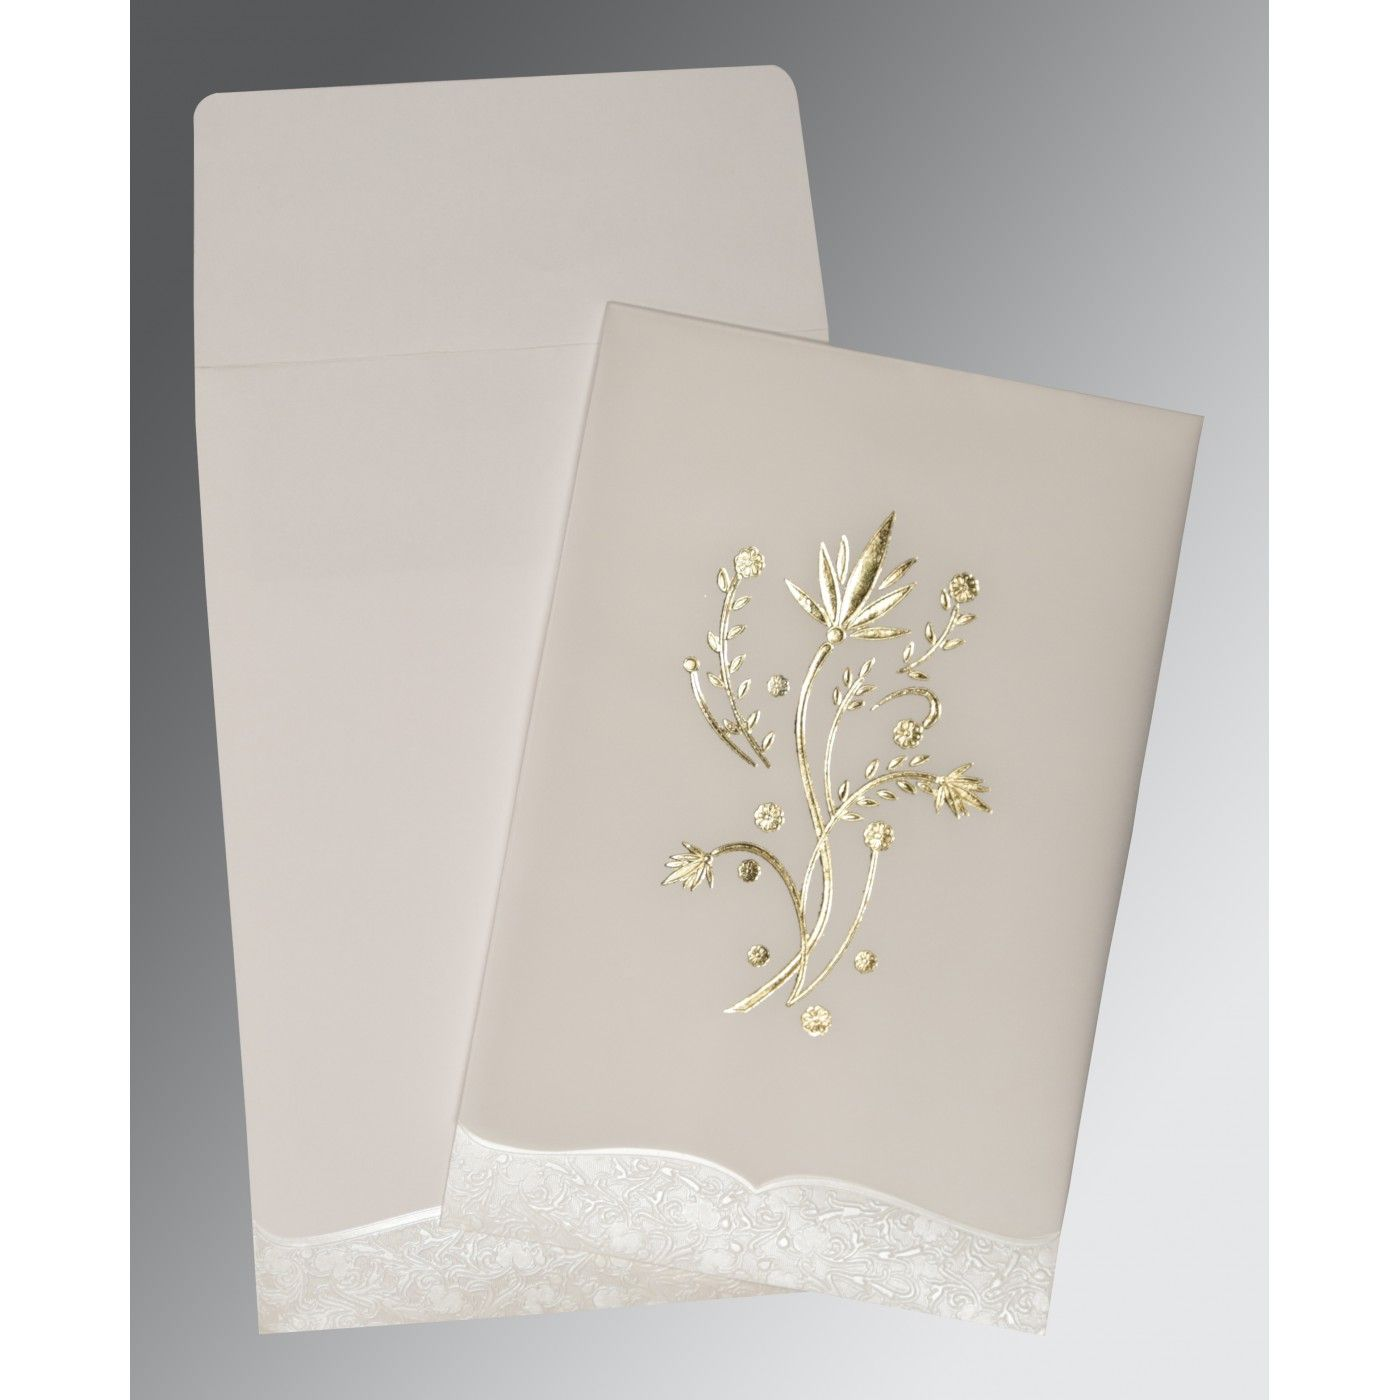 OFF-WHITE FLORAL THEMED - FOIL STAMPED WEDDING CARD : CG-1495 - IndianWeddingCards